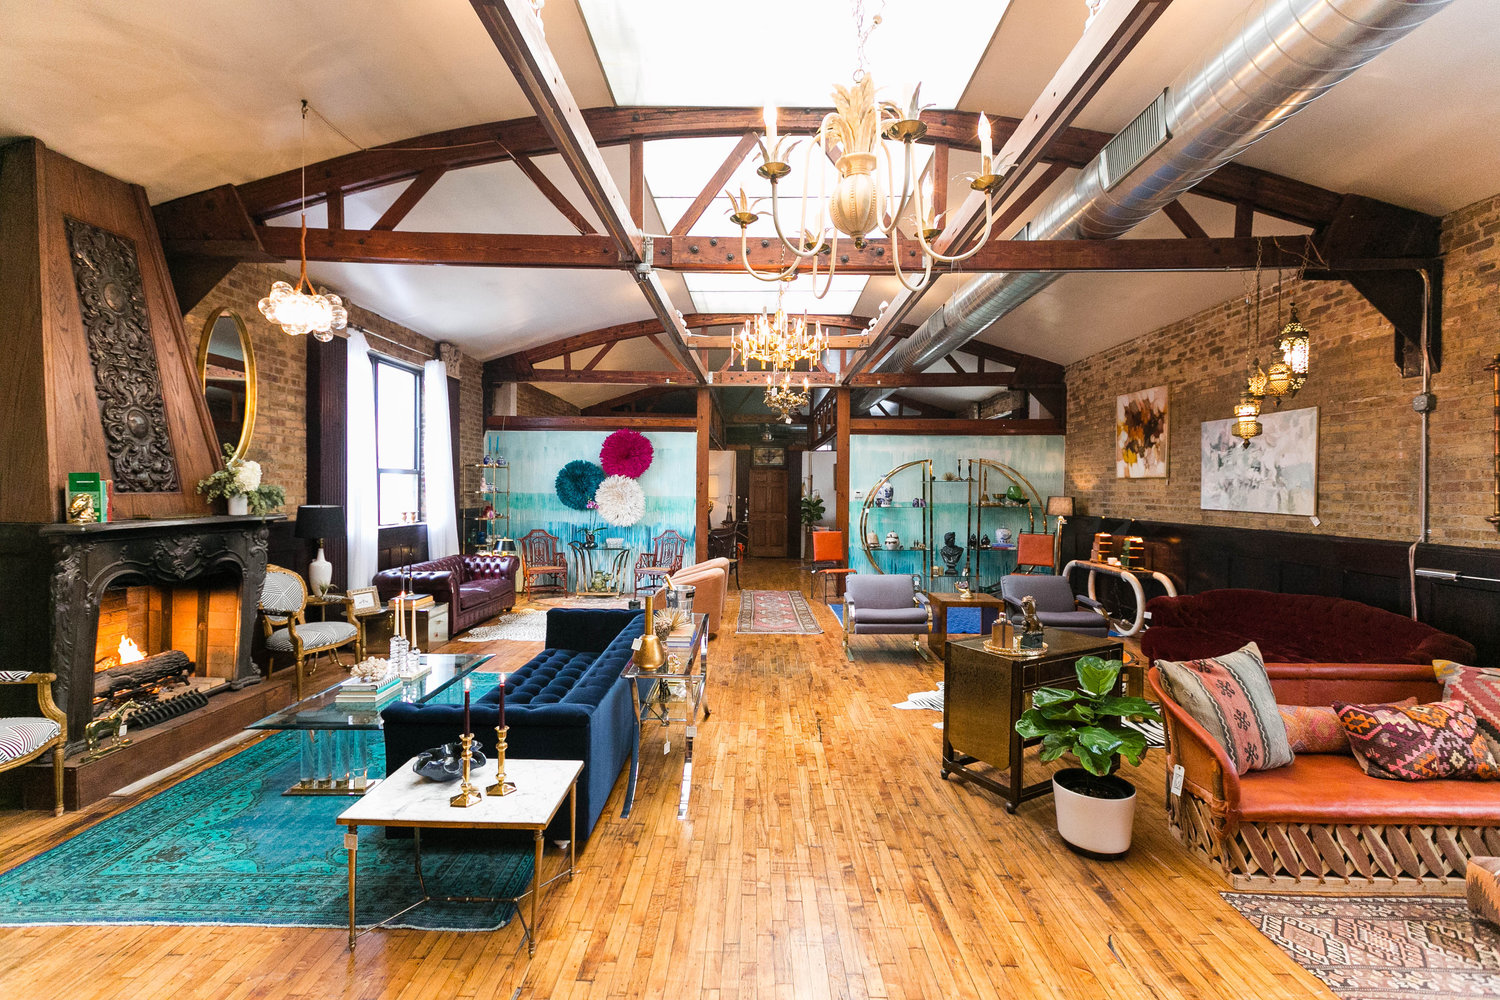 View More: http://emiliajane.pass.us/south-loop-loft